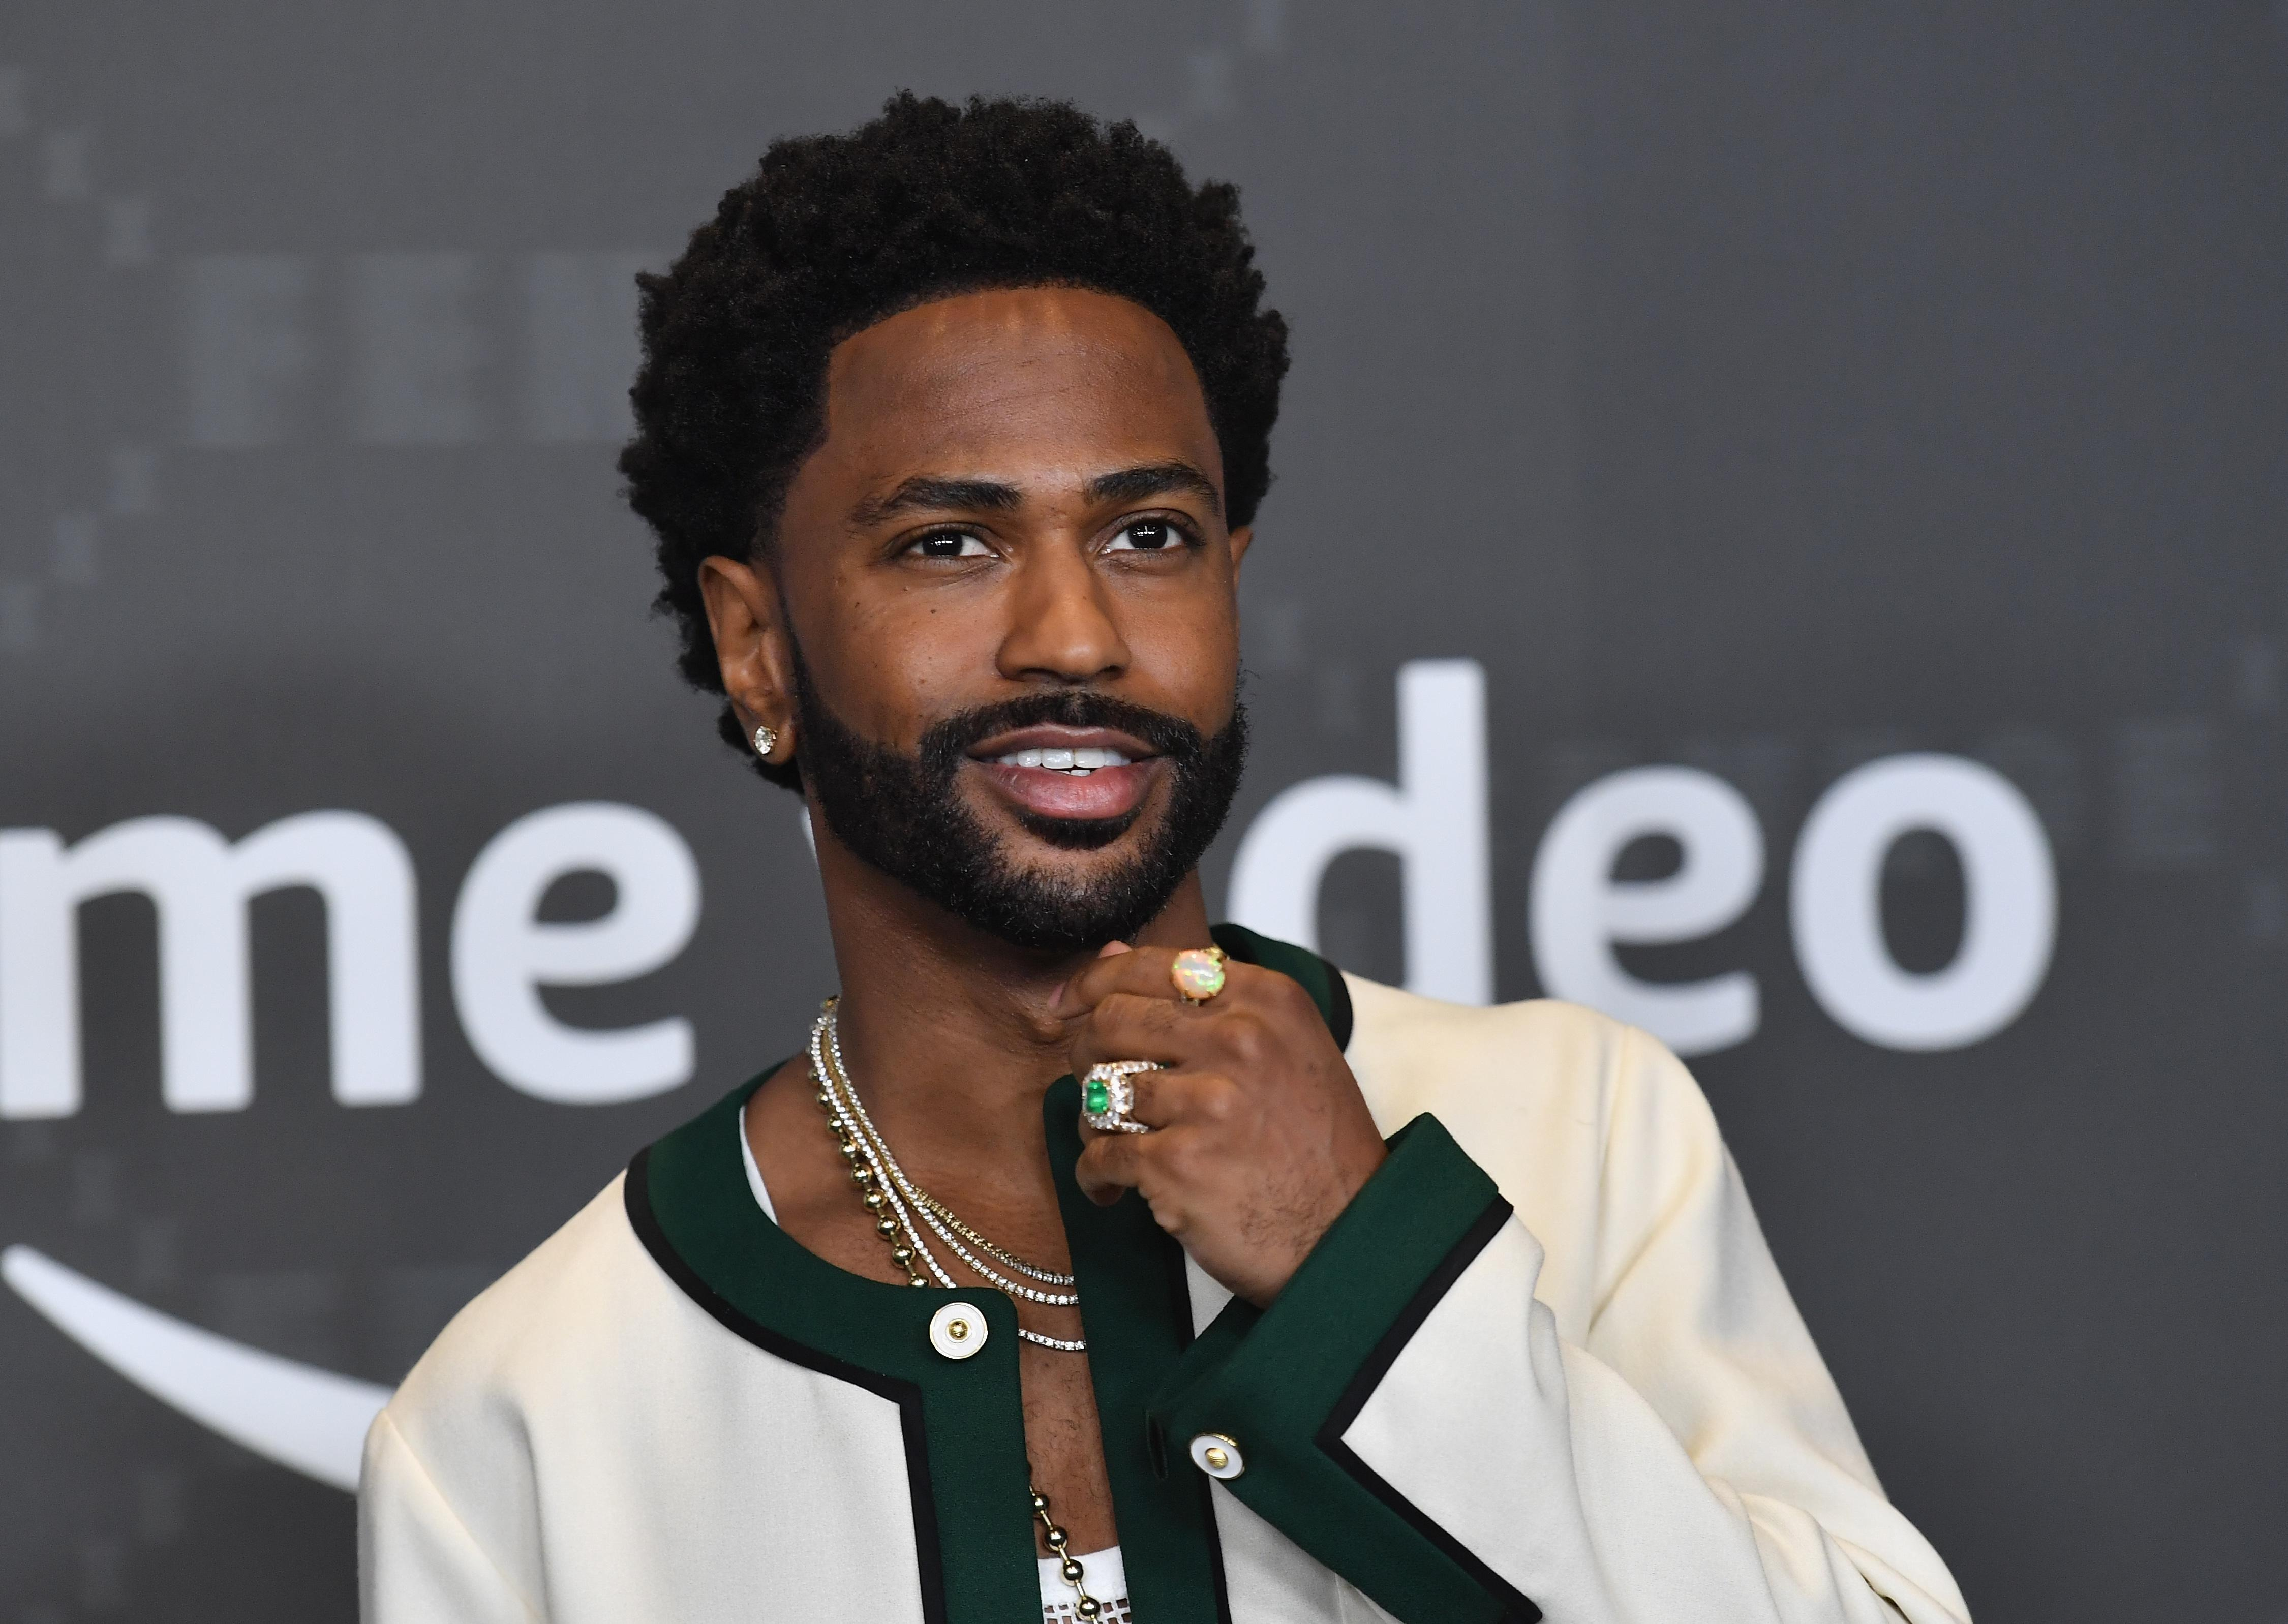 Big Sean shares details about his upcoming new album